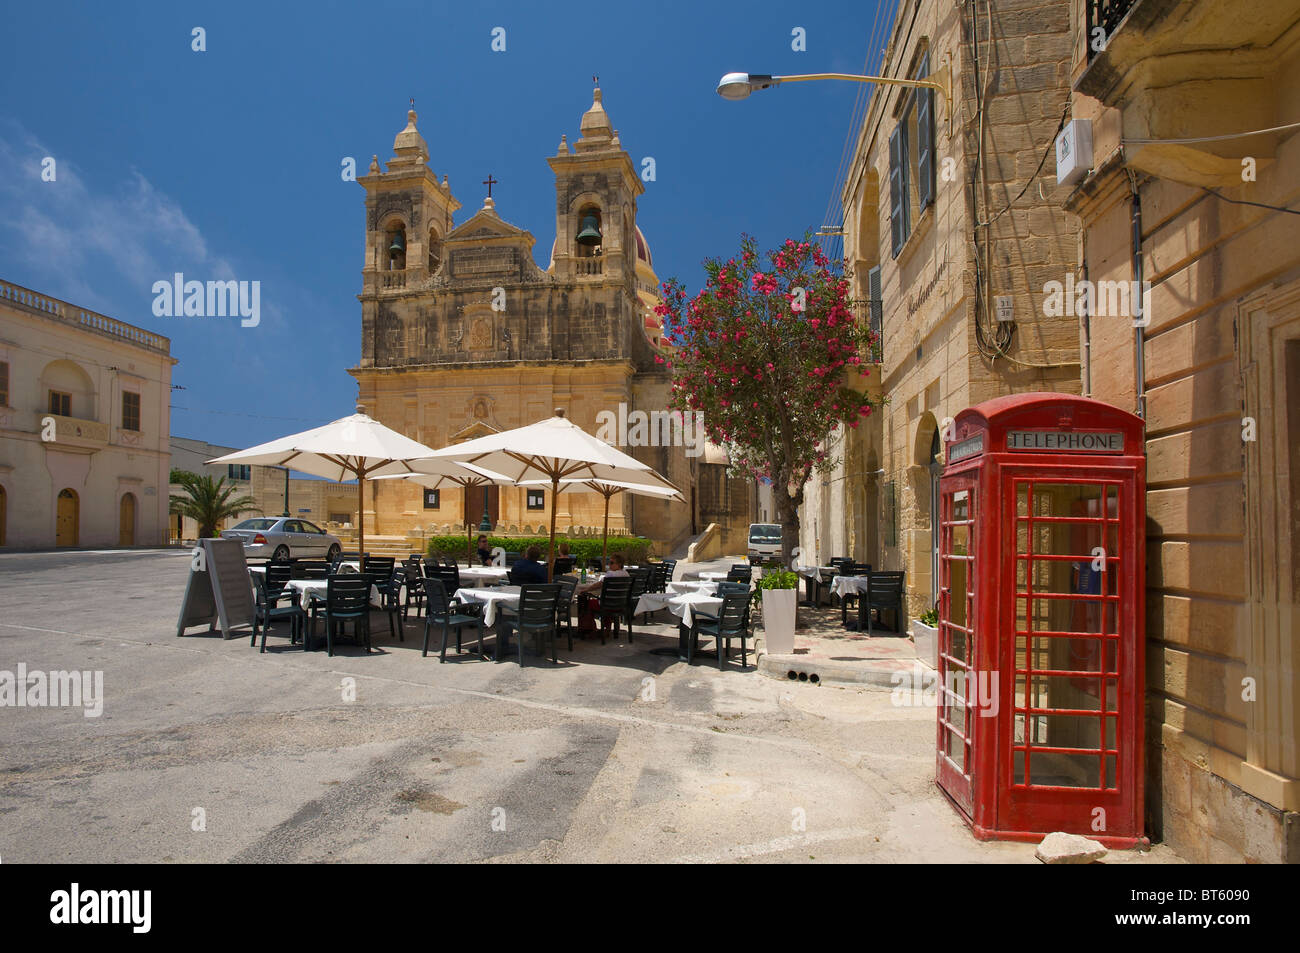 Street Cafe in front of the Cathedral in San Lawrenz, Gozo Island, Malta - Stock Image